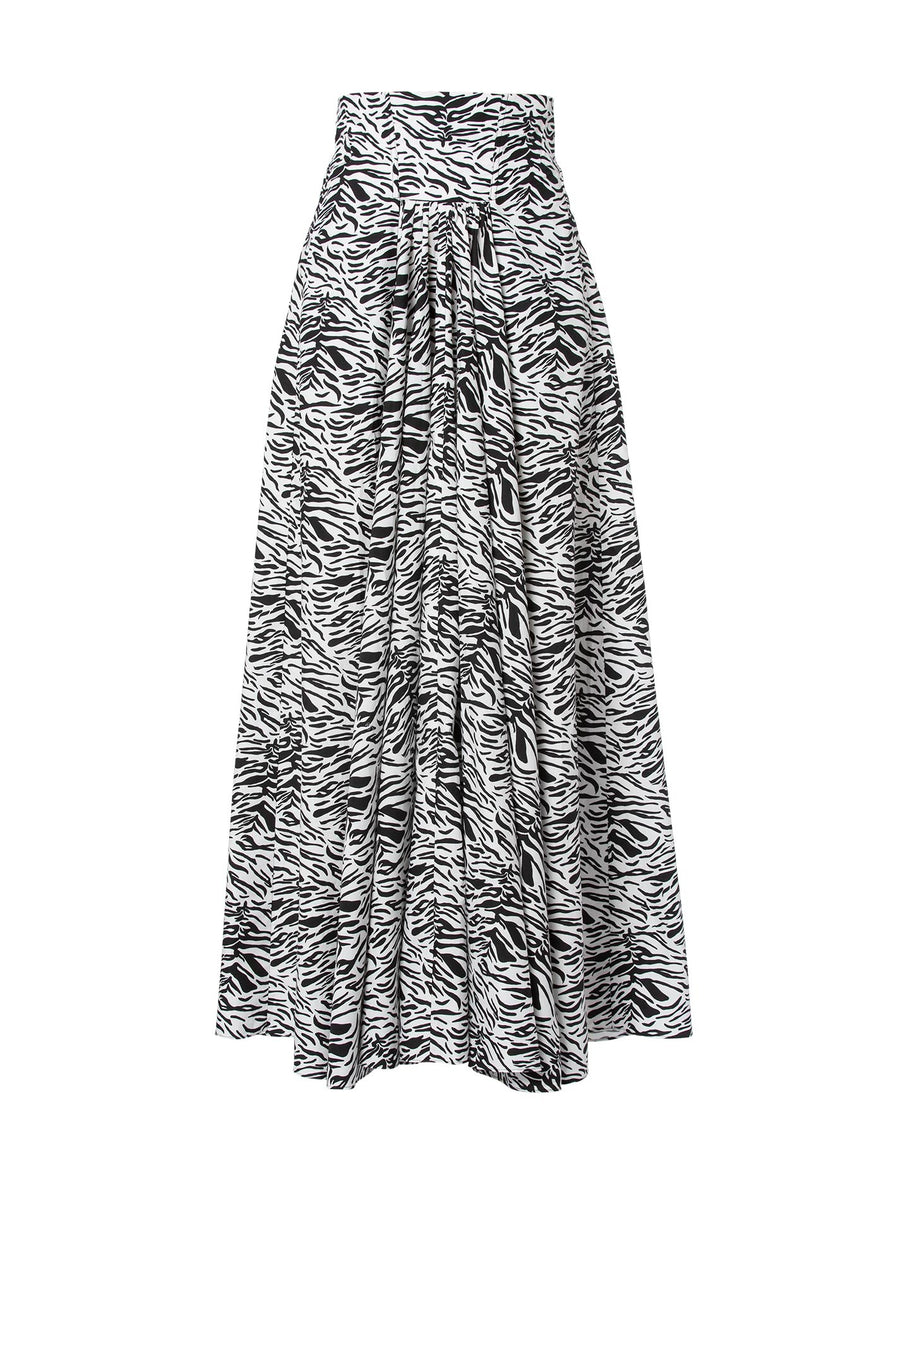 Animnal print skirt, Regular fit, Maxi Length